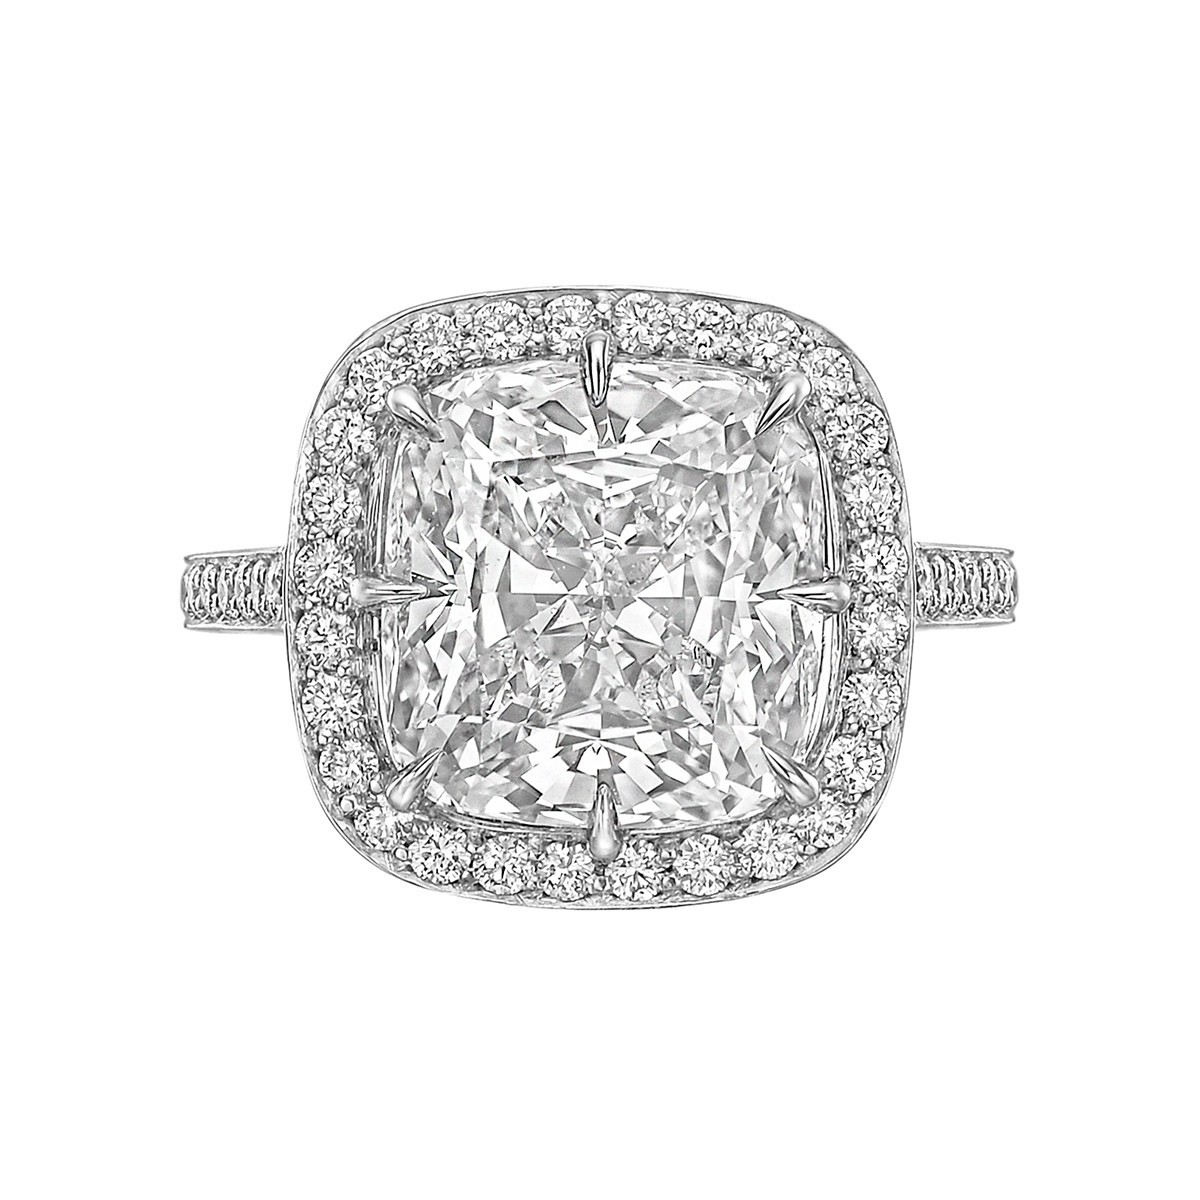 5.07ct Cushion-Cut Diamond Halo Ring